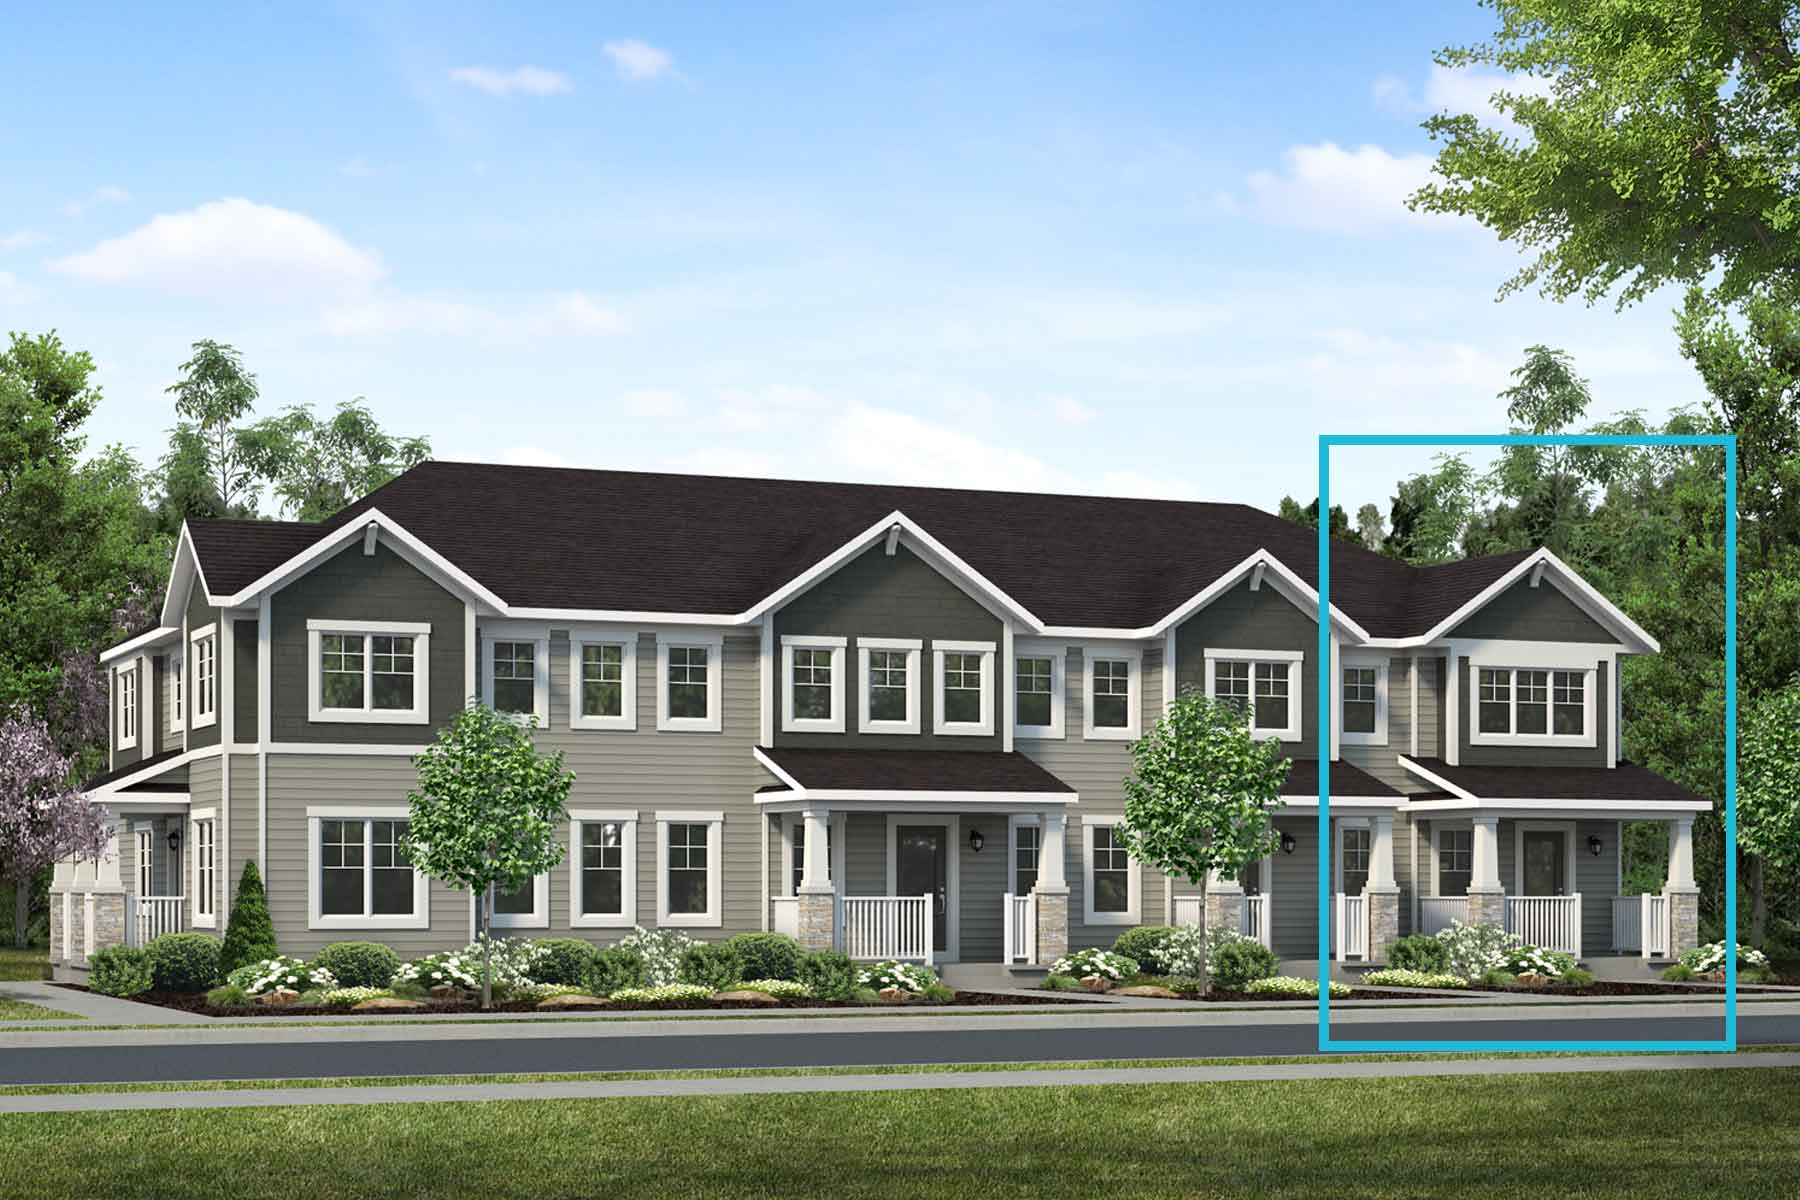 Vanier End Plan TownHomes at Cityscape in Calgary Alberta by Mattamy Homes